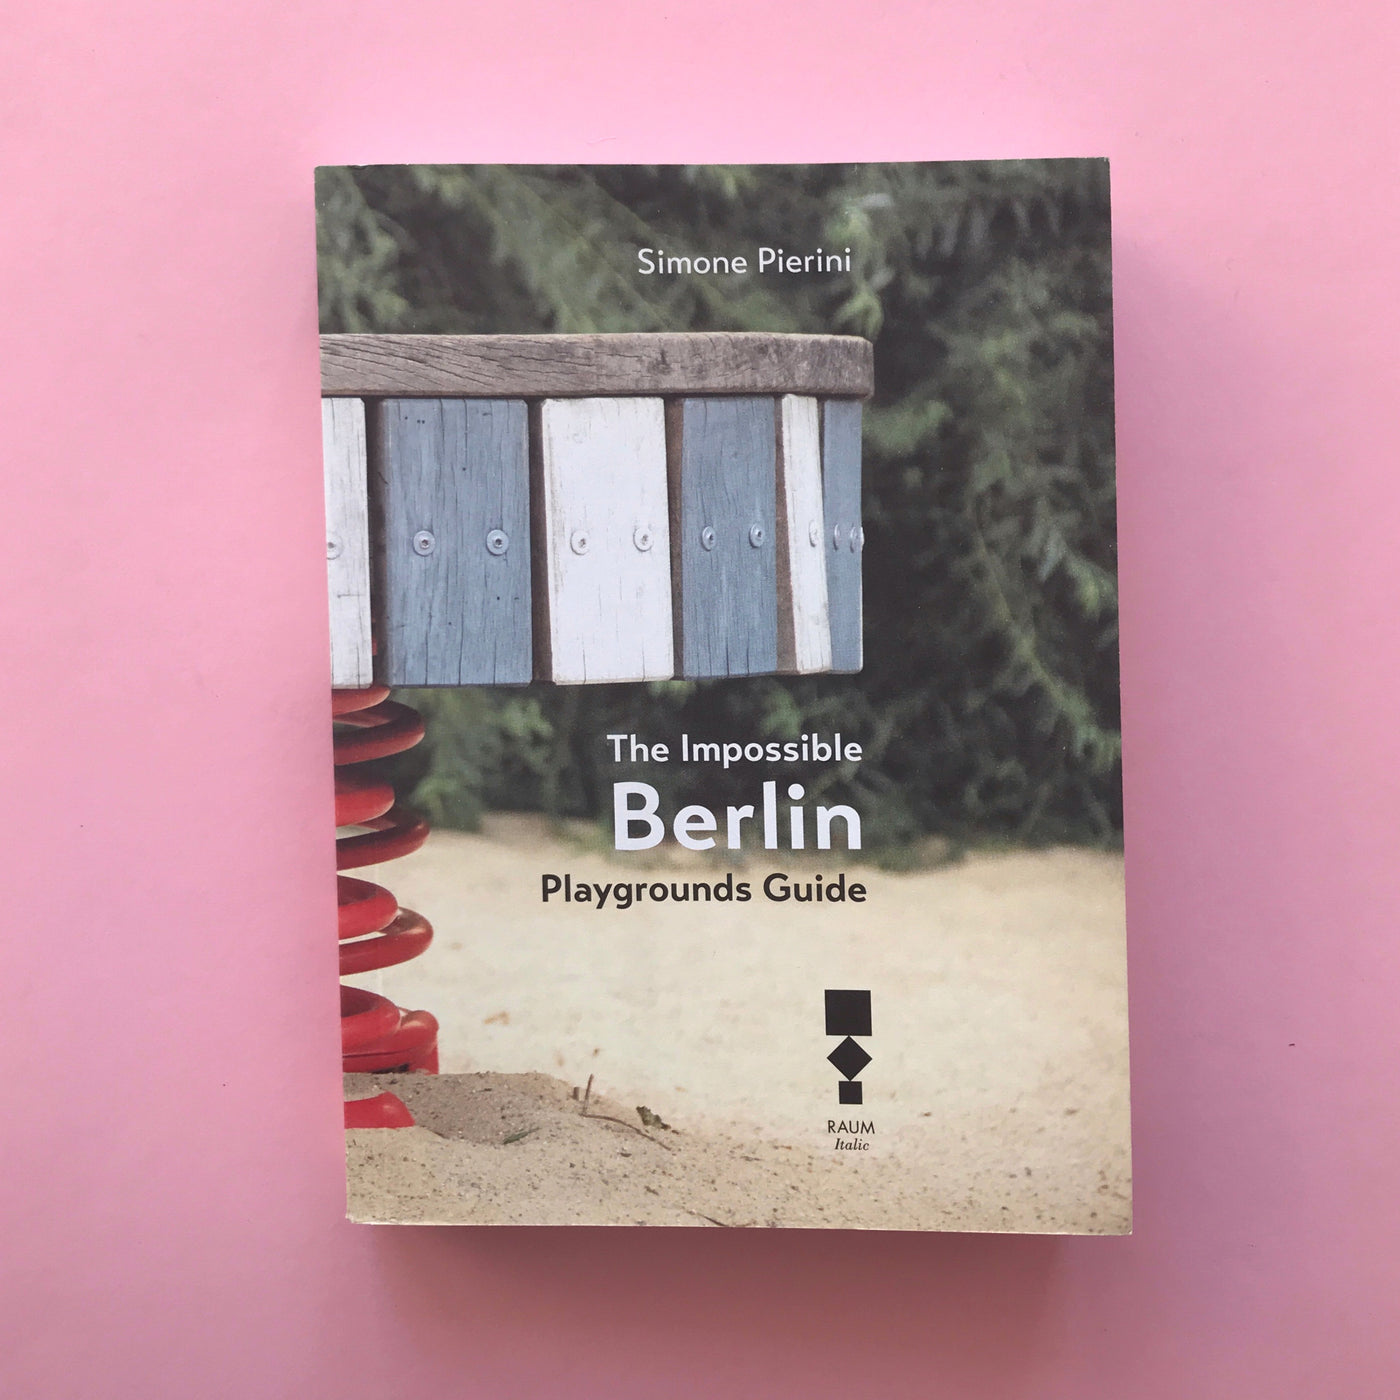 The Impossible Berlin Playgrounds Guide